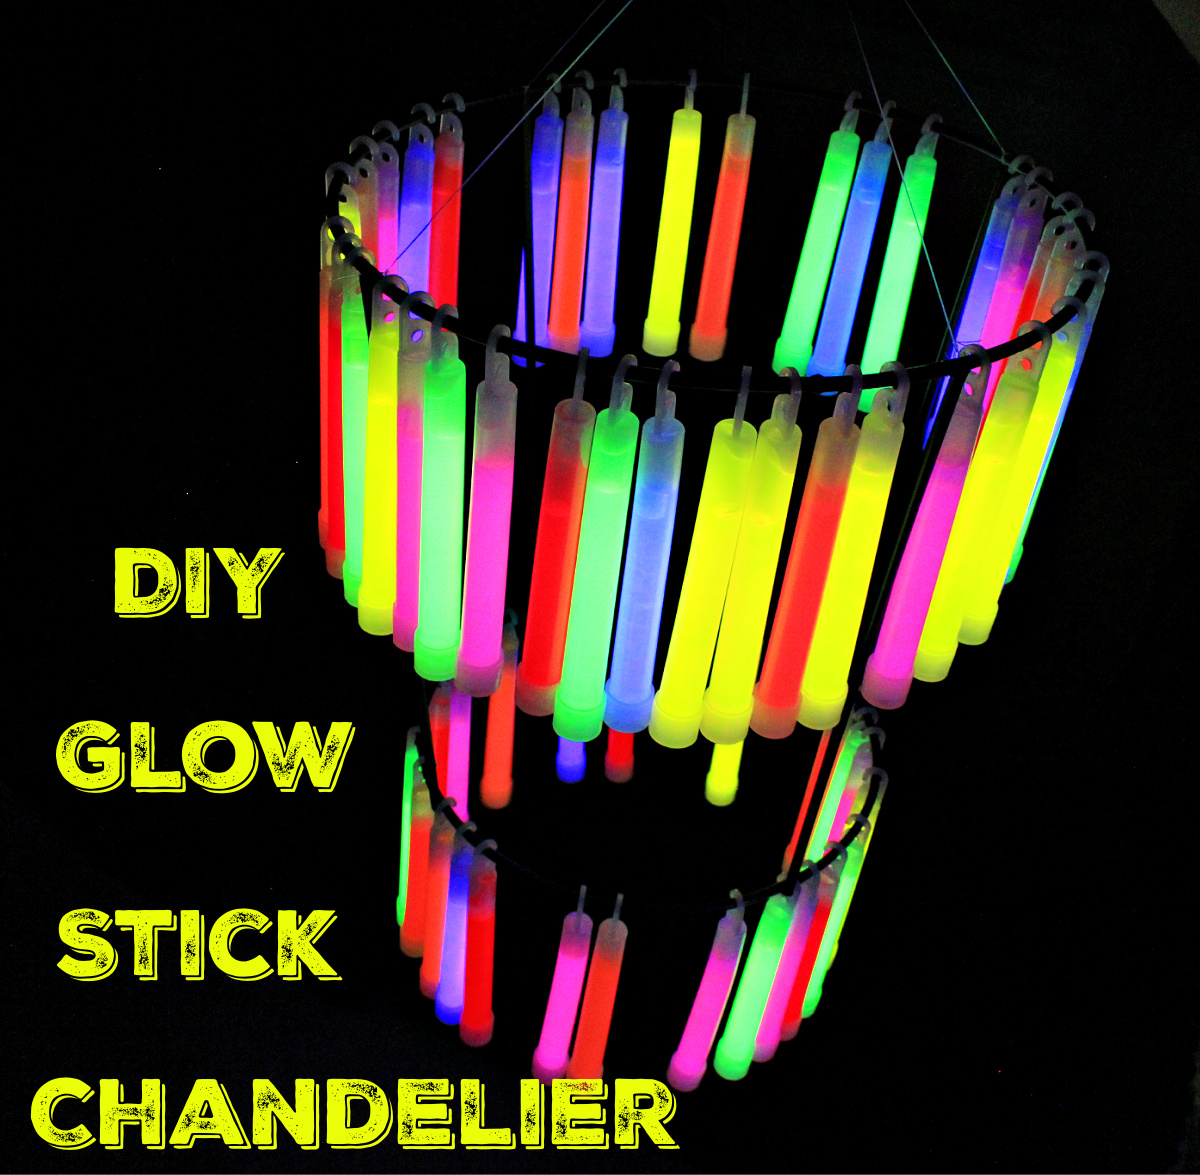 DIY Glow stick chandelier